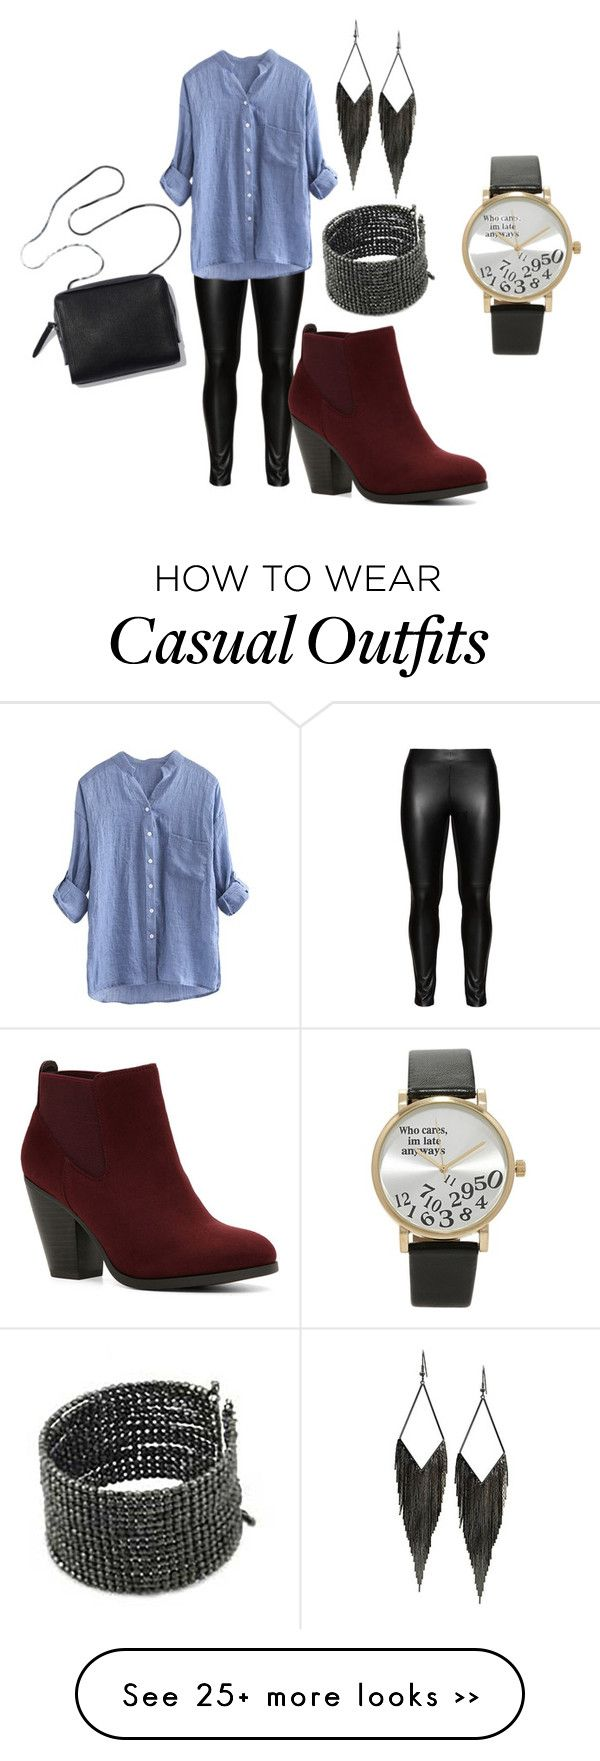 """Casual concert"" by kaitlyn-guilliams on Polyvore featuring Studio, GUESS, Call it SPRING and Forever 21"